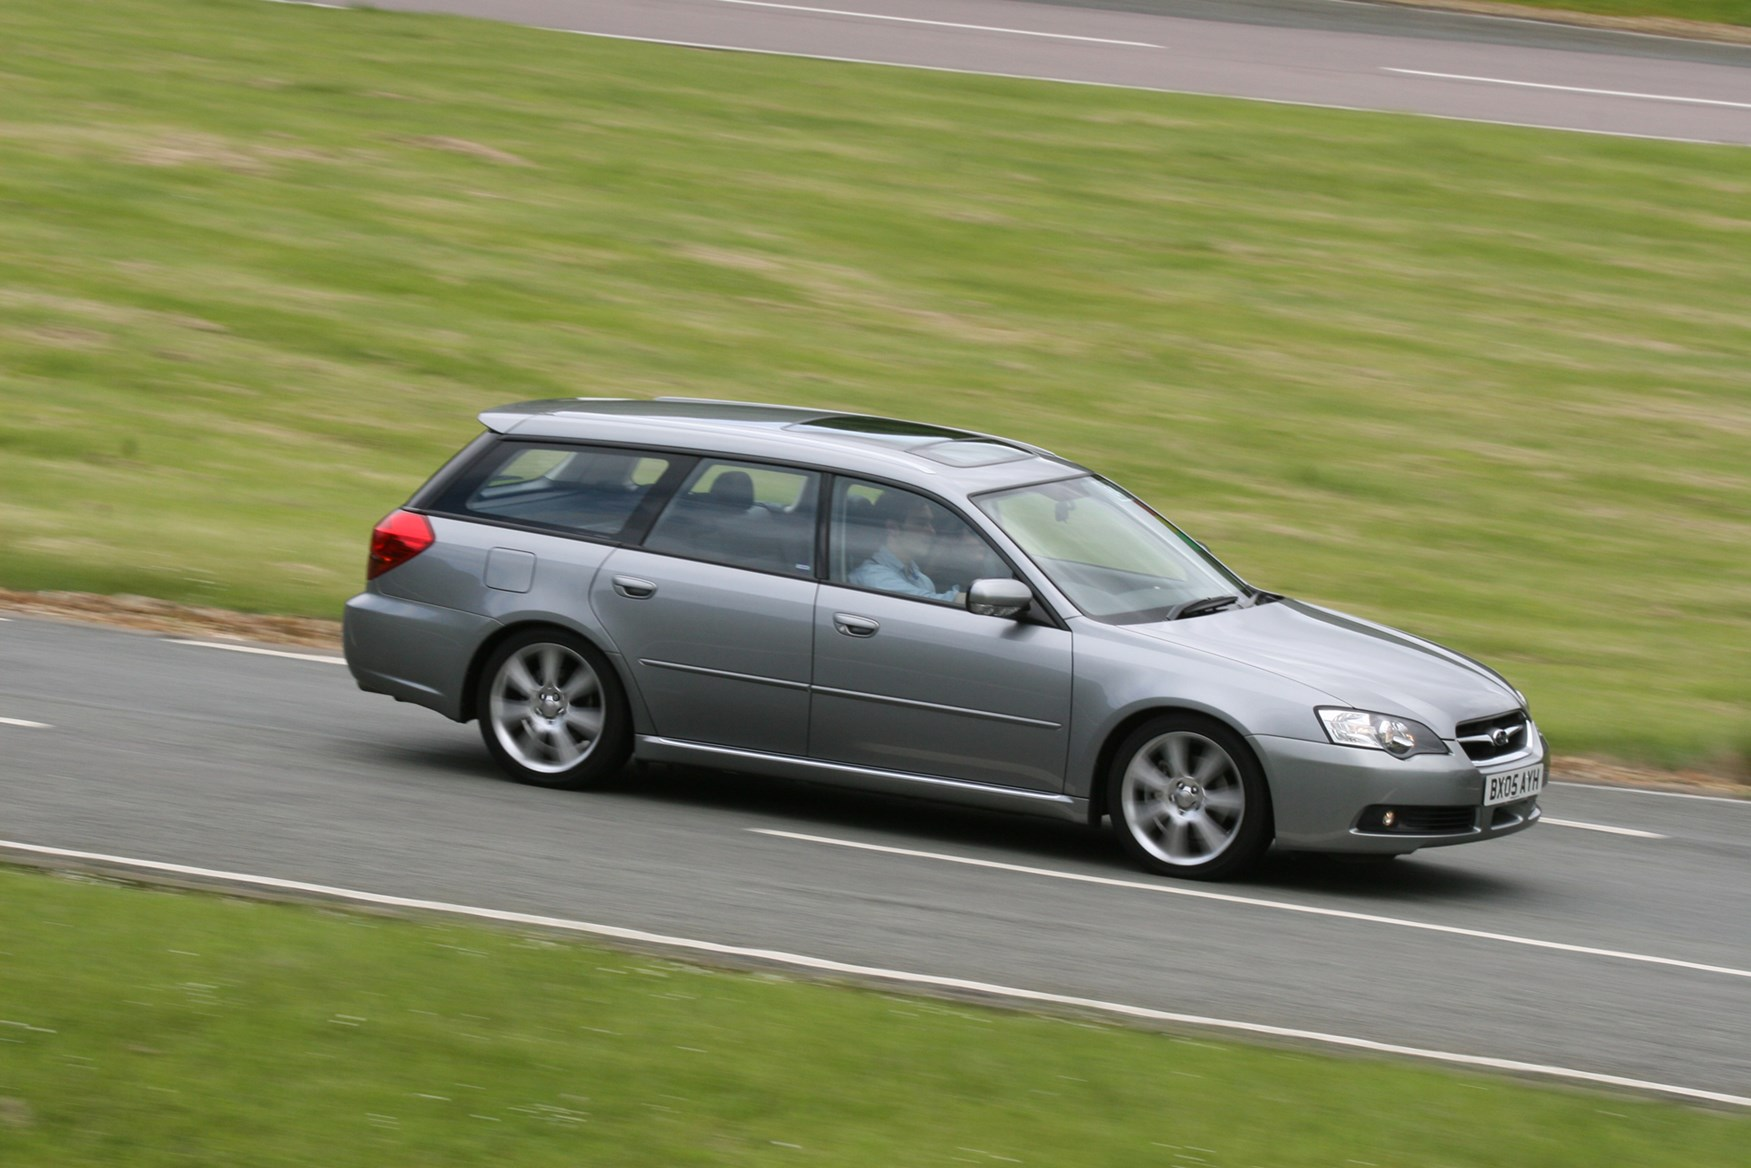 View all images of the subaru legacy sports tourer 03 09